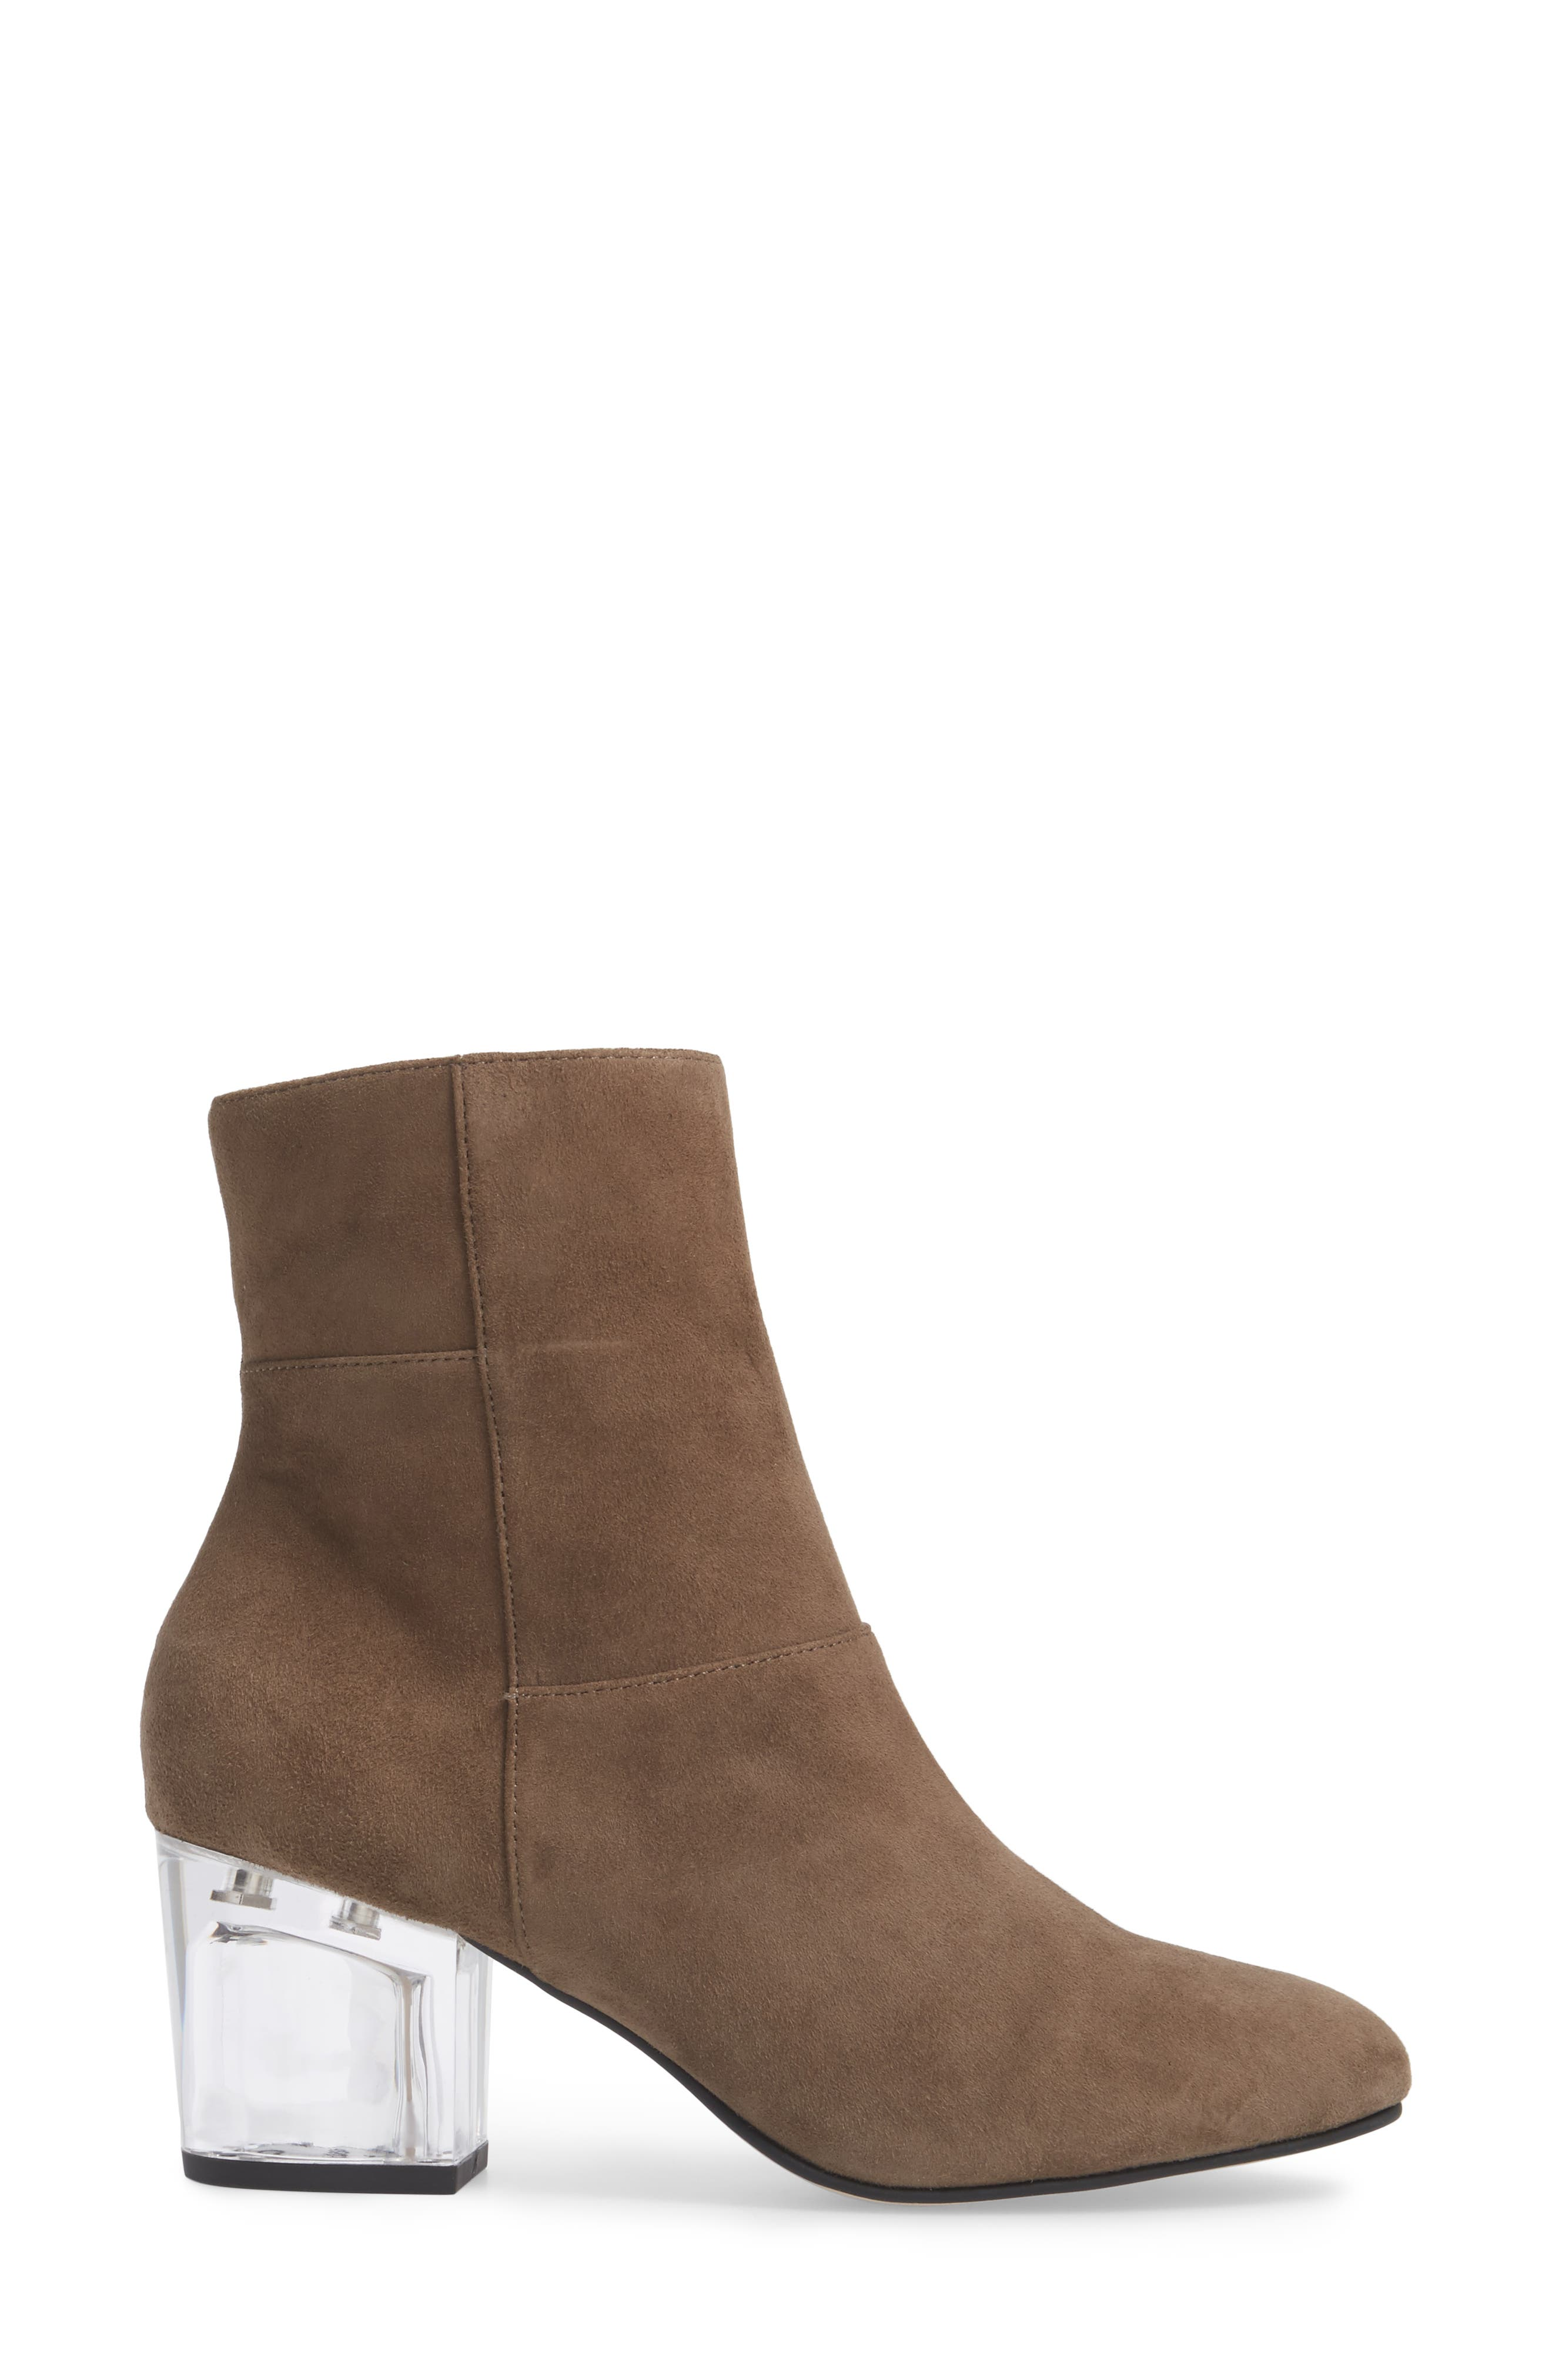 Dinah Bootie,                             Alternate thumbnail 3, color,                             Night Taupe